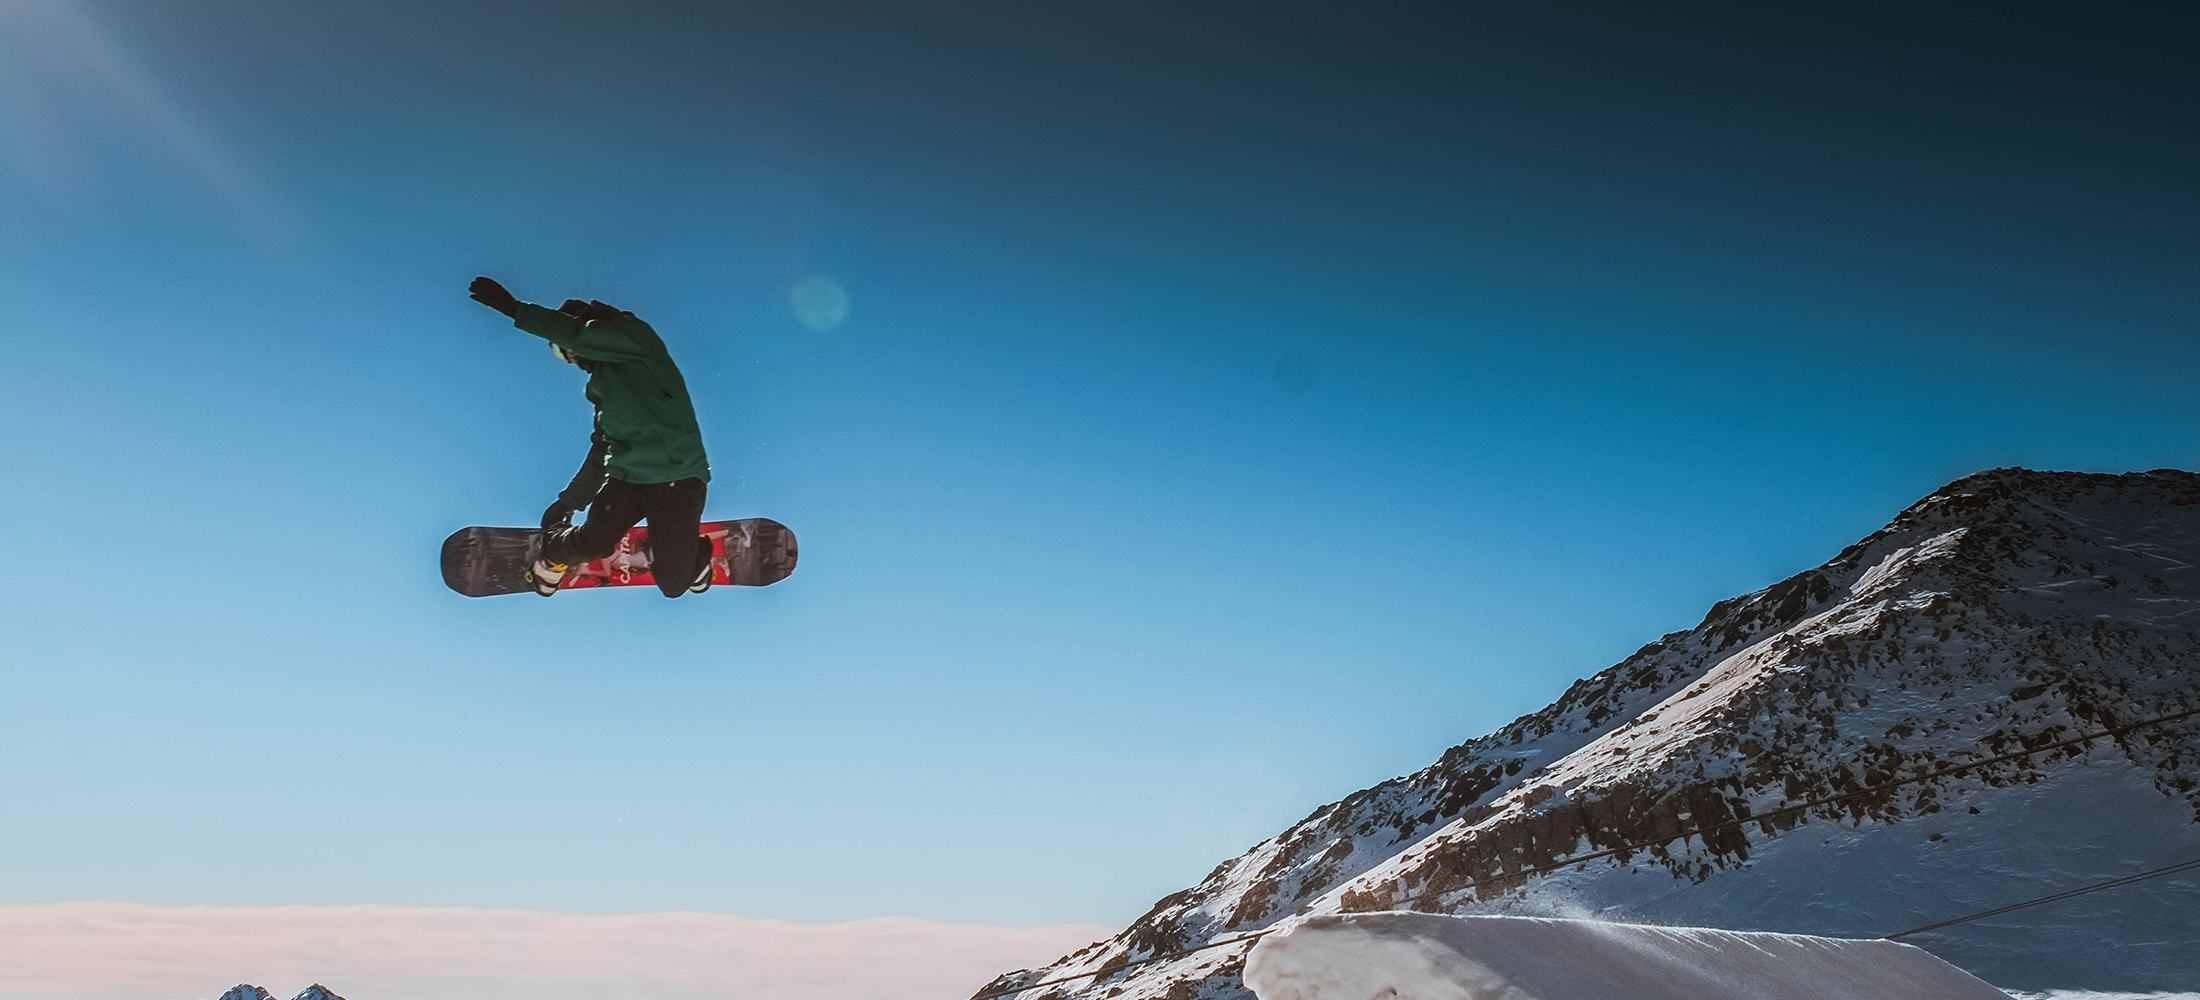 11 most iconic snowboard brands snowboard branding